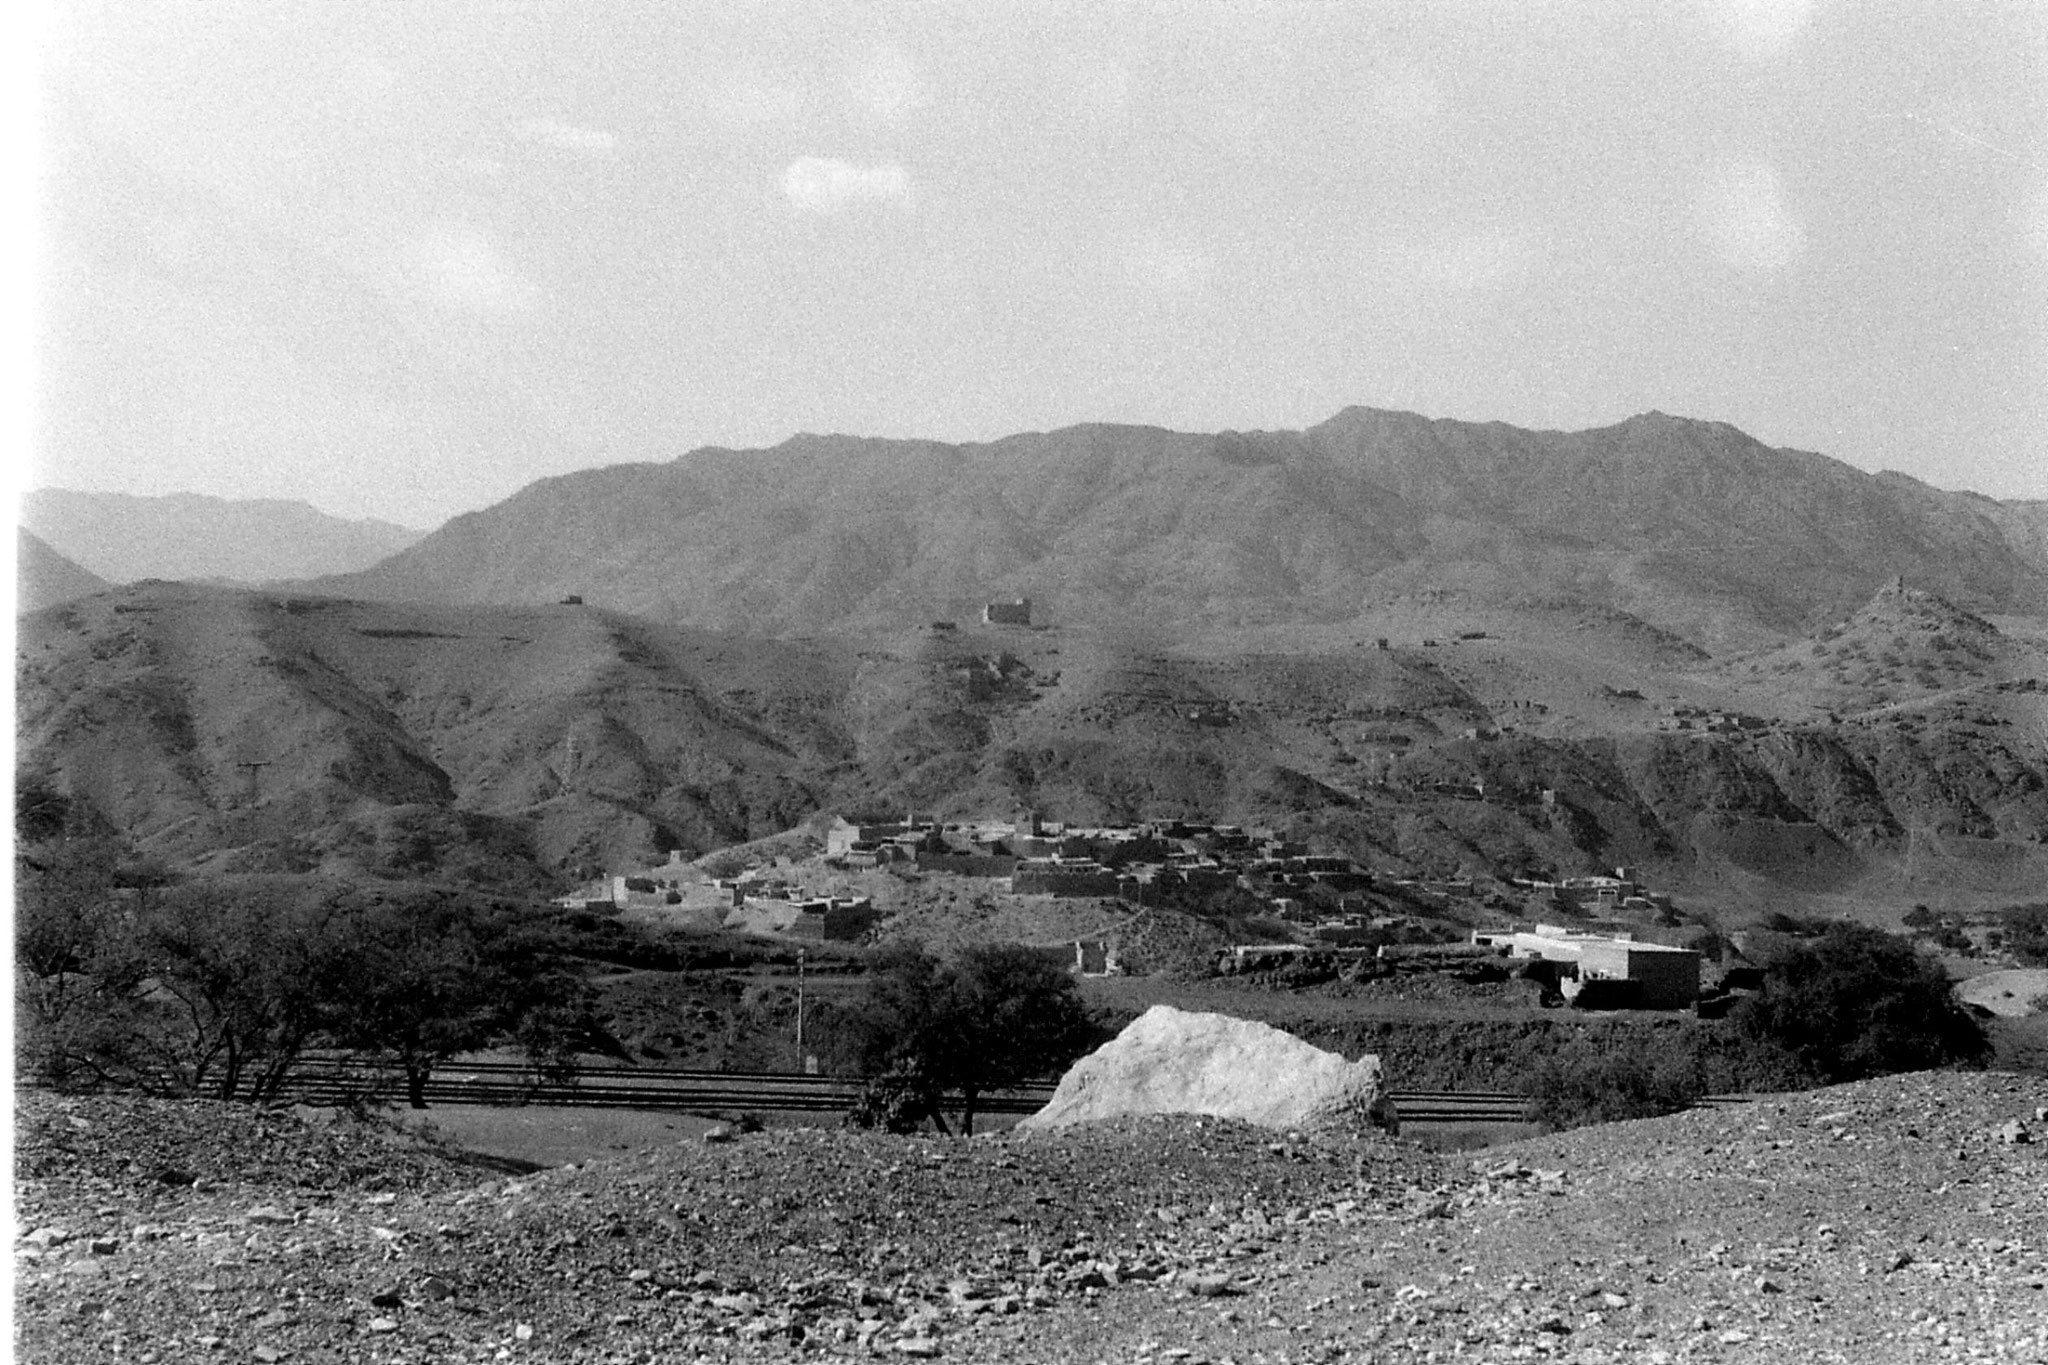 6/11/1989: 24: Ali Masjid fortified village